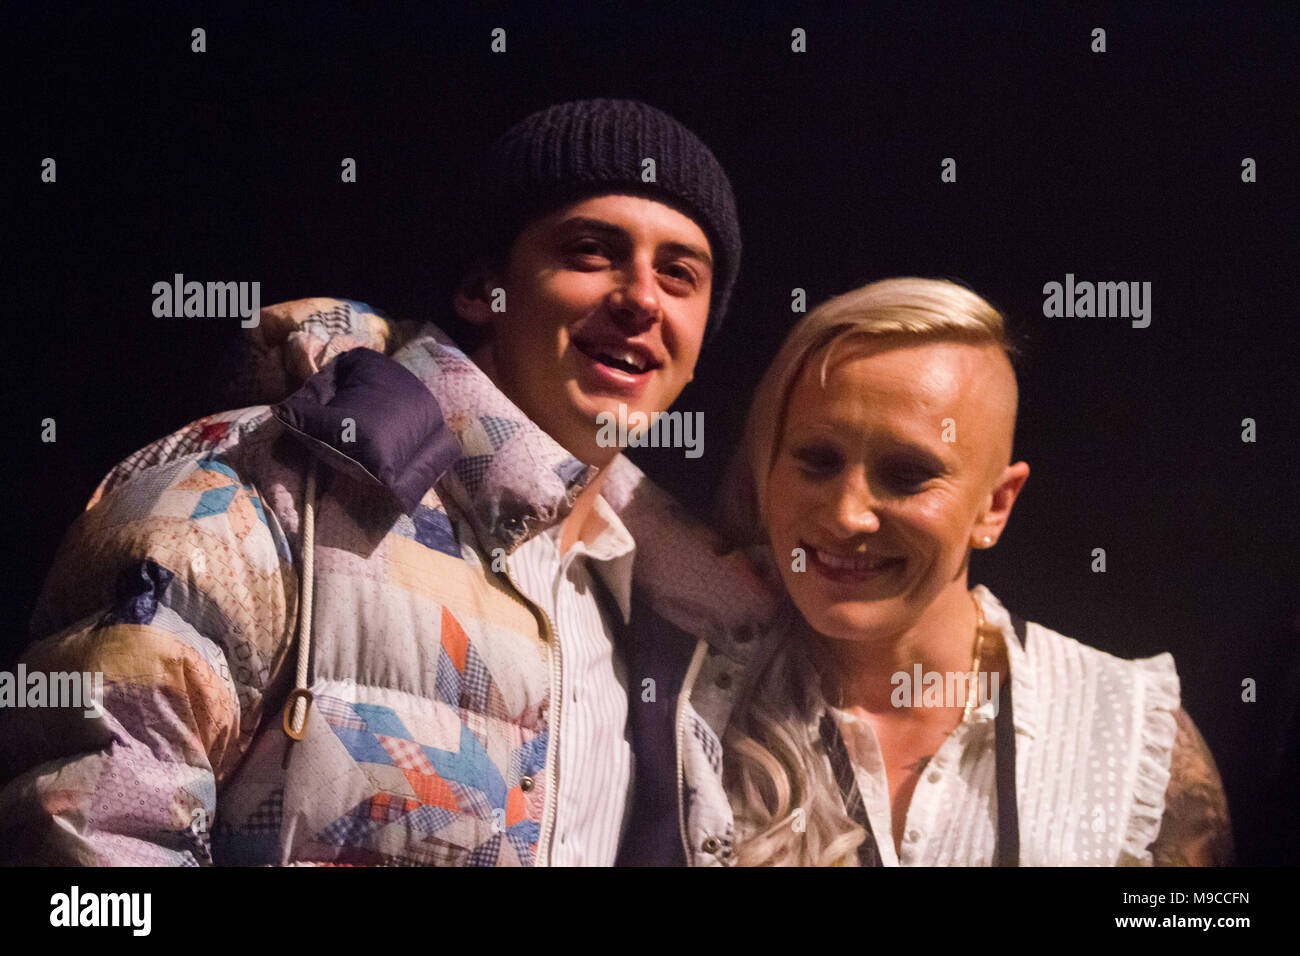 Vancouver, British Columbia, Canada. 22nd Mar, 2018. Canadian Olympians and Medallists in PyeongChang, Skier Mark McMorris and BobSled Kaillie Humphries at the Juno Cup Jam Show, Thursday to kick off Juno Awards week in Support of MusiCounts. Credit: Ron Palmer/SOPA Images/ZUMA Wire/Alamy Live News - Stock Image